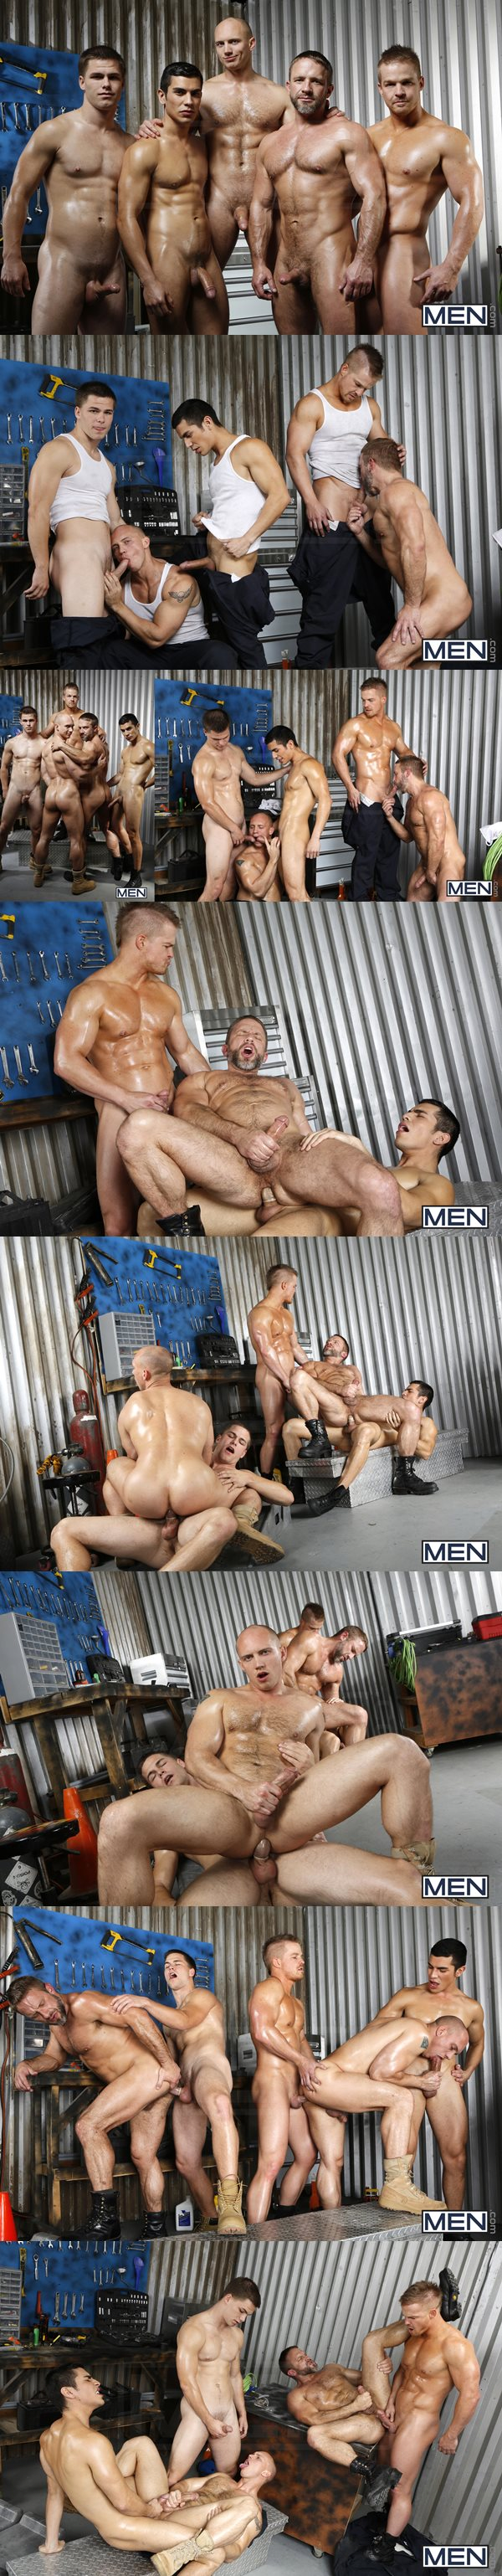 Jimmy Johnson, Liam Magnuson, Lance Luciano fuck Dirk Caber and John Magnum in The Shop at Jizzorgy 02